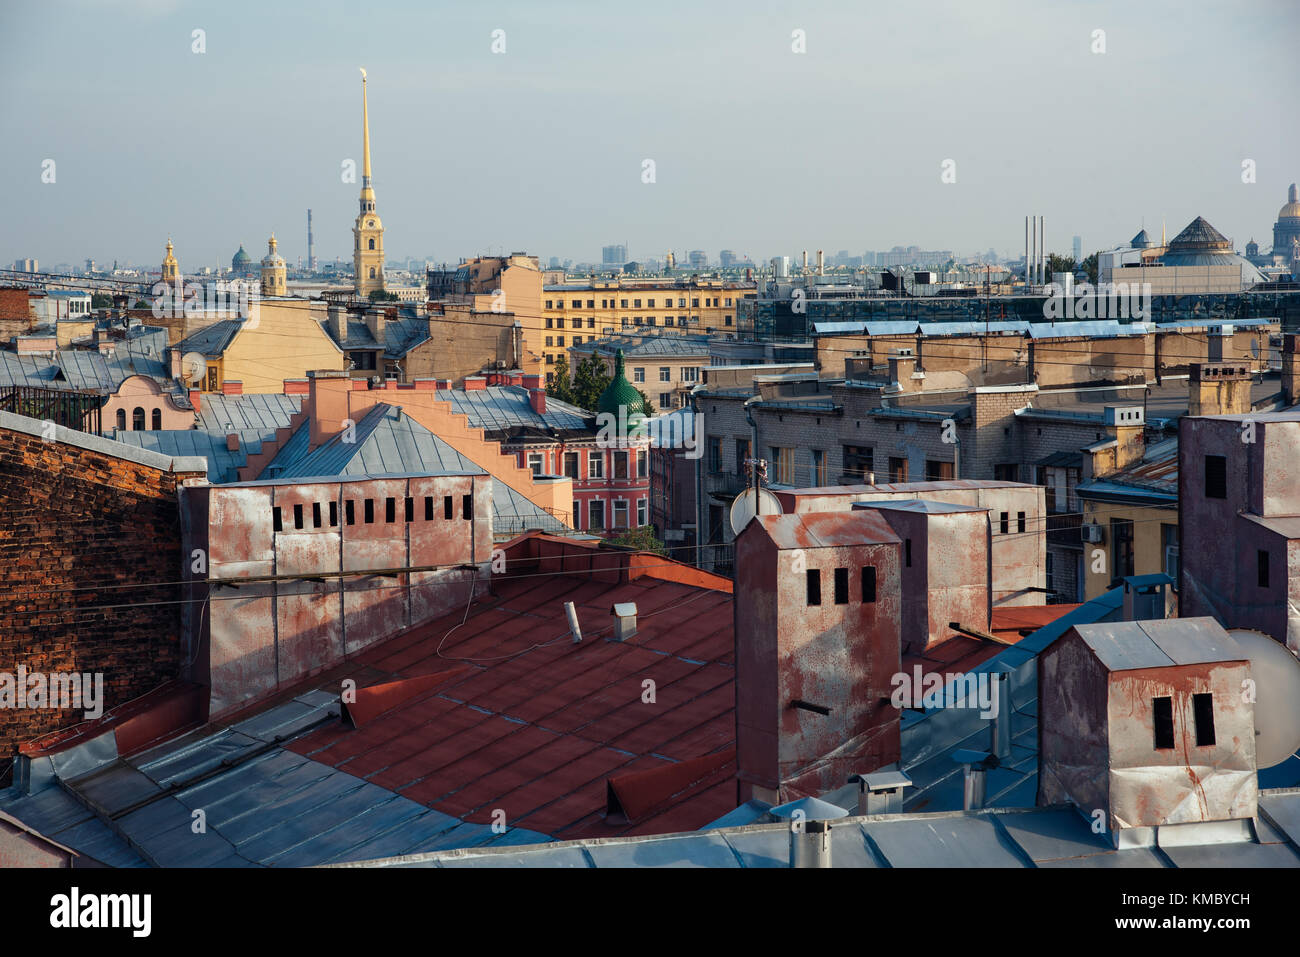 view over the rooftops of Saint-Petersburg - Stock Image